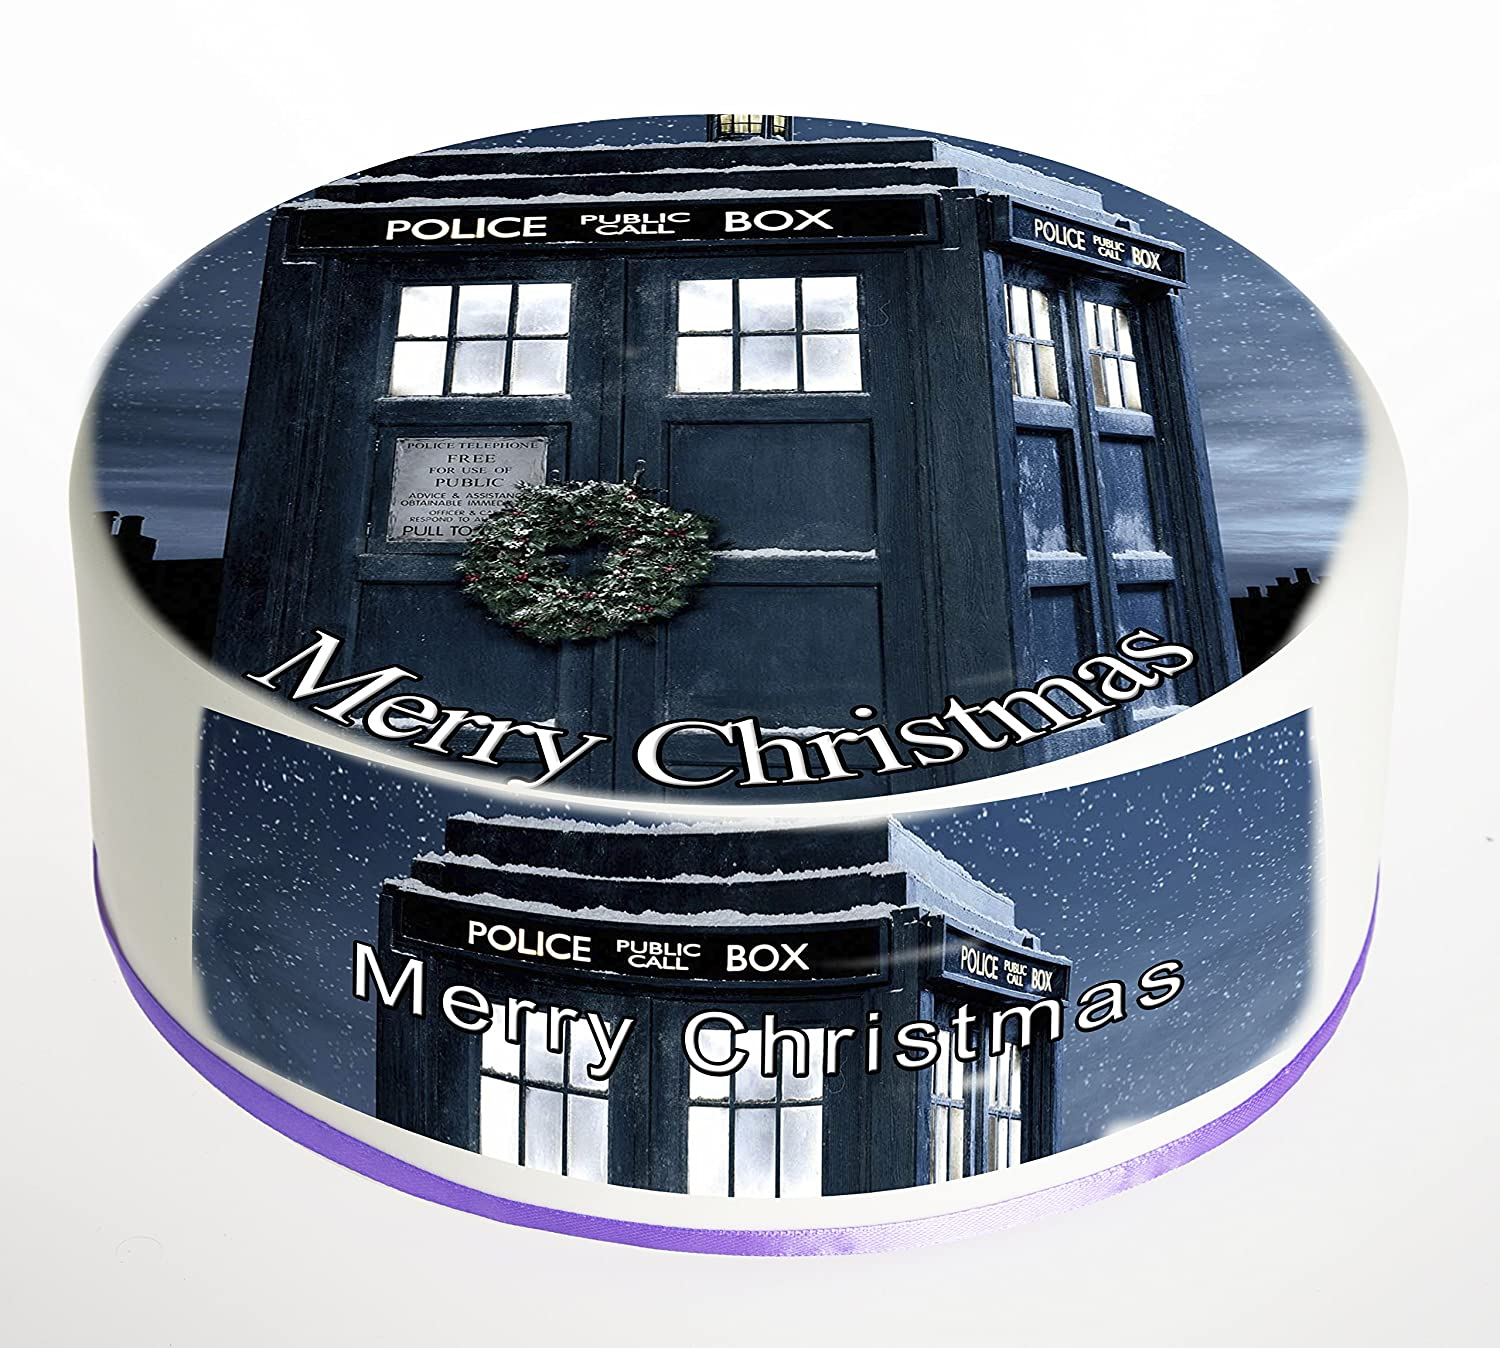 Christmas Cake Topper Doctor Who Tardis Merry Christmas Edible Icing Frosting Sheet or Rice paper Wafer. Sizes available: 7.5 Inch, 8.5 inch, 9.5 inch, 10.5 inch, 11.5 inch. Ideal for Christmas party, Christmas cake, Christmas decoration etc